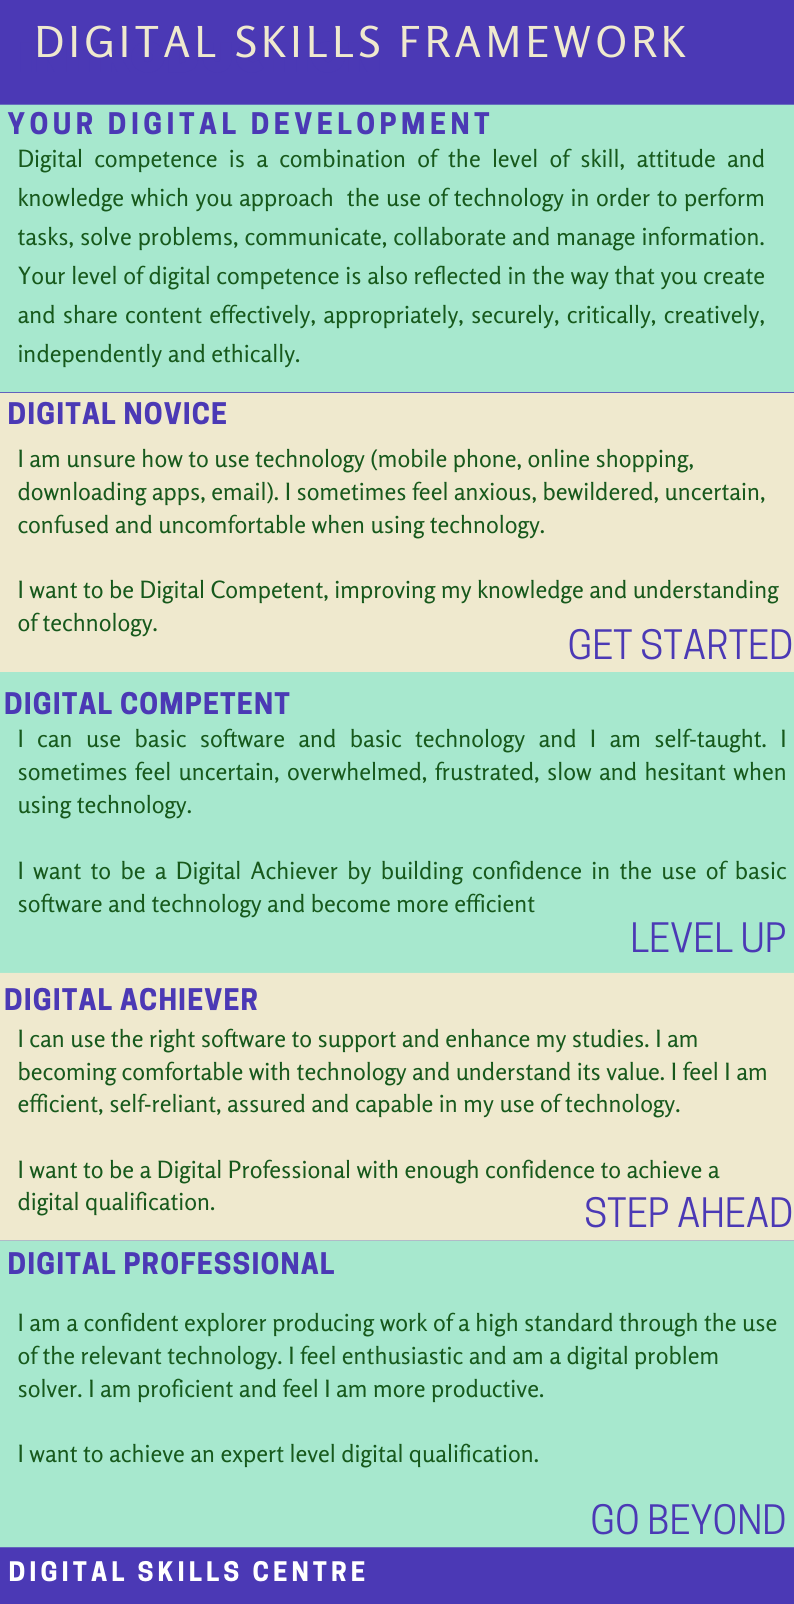 Four levels of digital competency